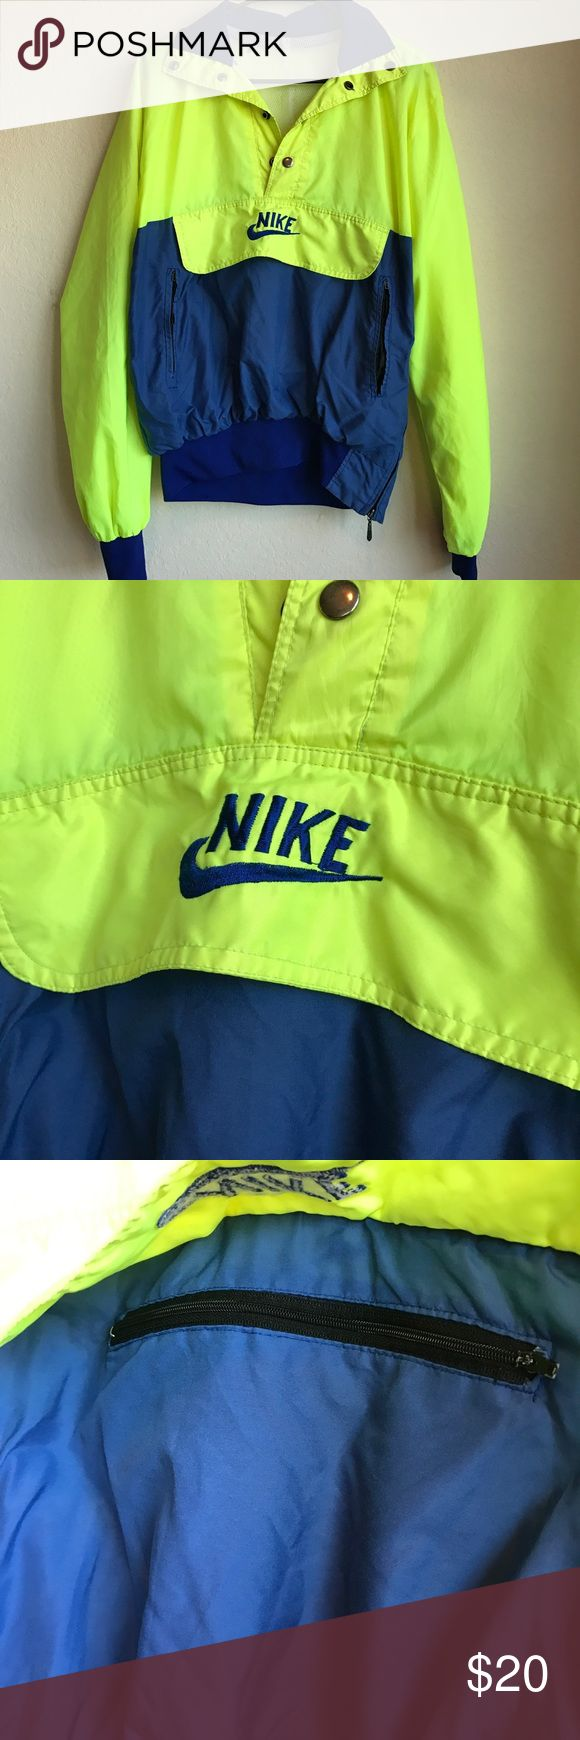 Vintage NIKE Jacket Size Medium/Large Not Size indicated (but it fits a medium/large best in my opinion), definitely shows some wear and has some spots. It's vintage Nike Jackets & Coats